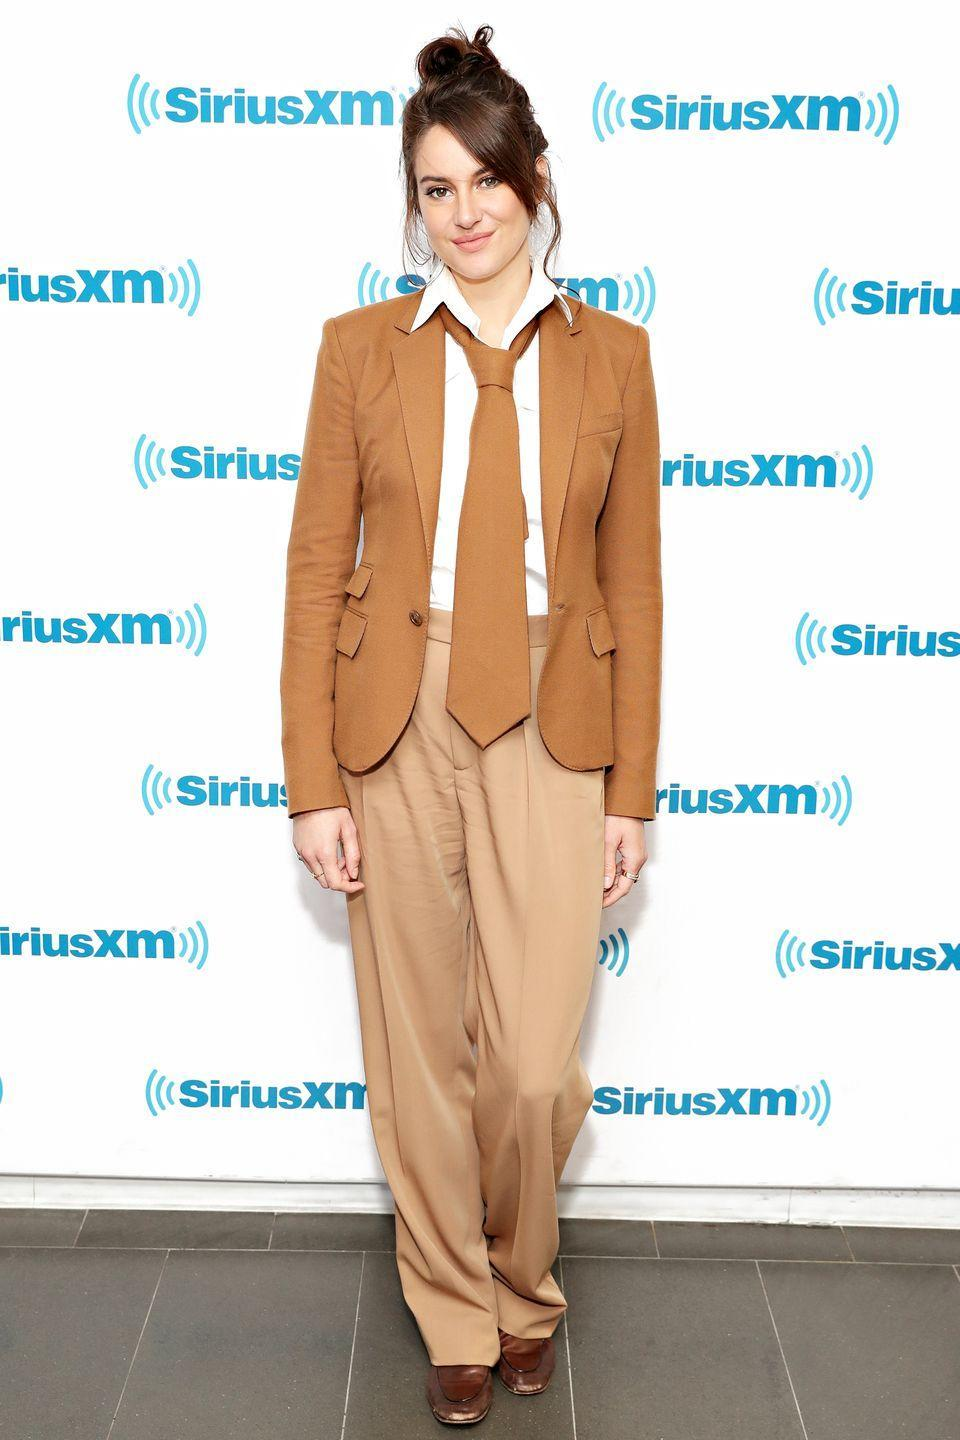 <p>Who: Shailene Woodley </p><p>When: June 11, 2019</p><p>Wearing: A brown and white suit</p><p>Why: Shailene Woodley must have taken a cue from Annie Hall for her New York City look, and we're here for it. The playful addition of an oversized tie really makes the look. </p>